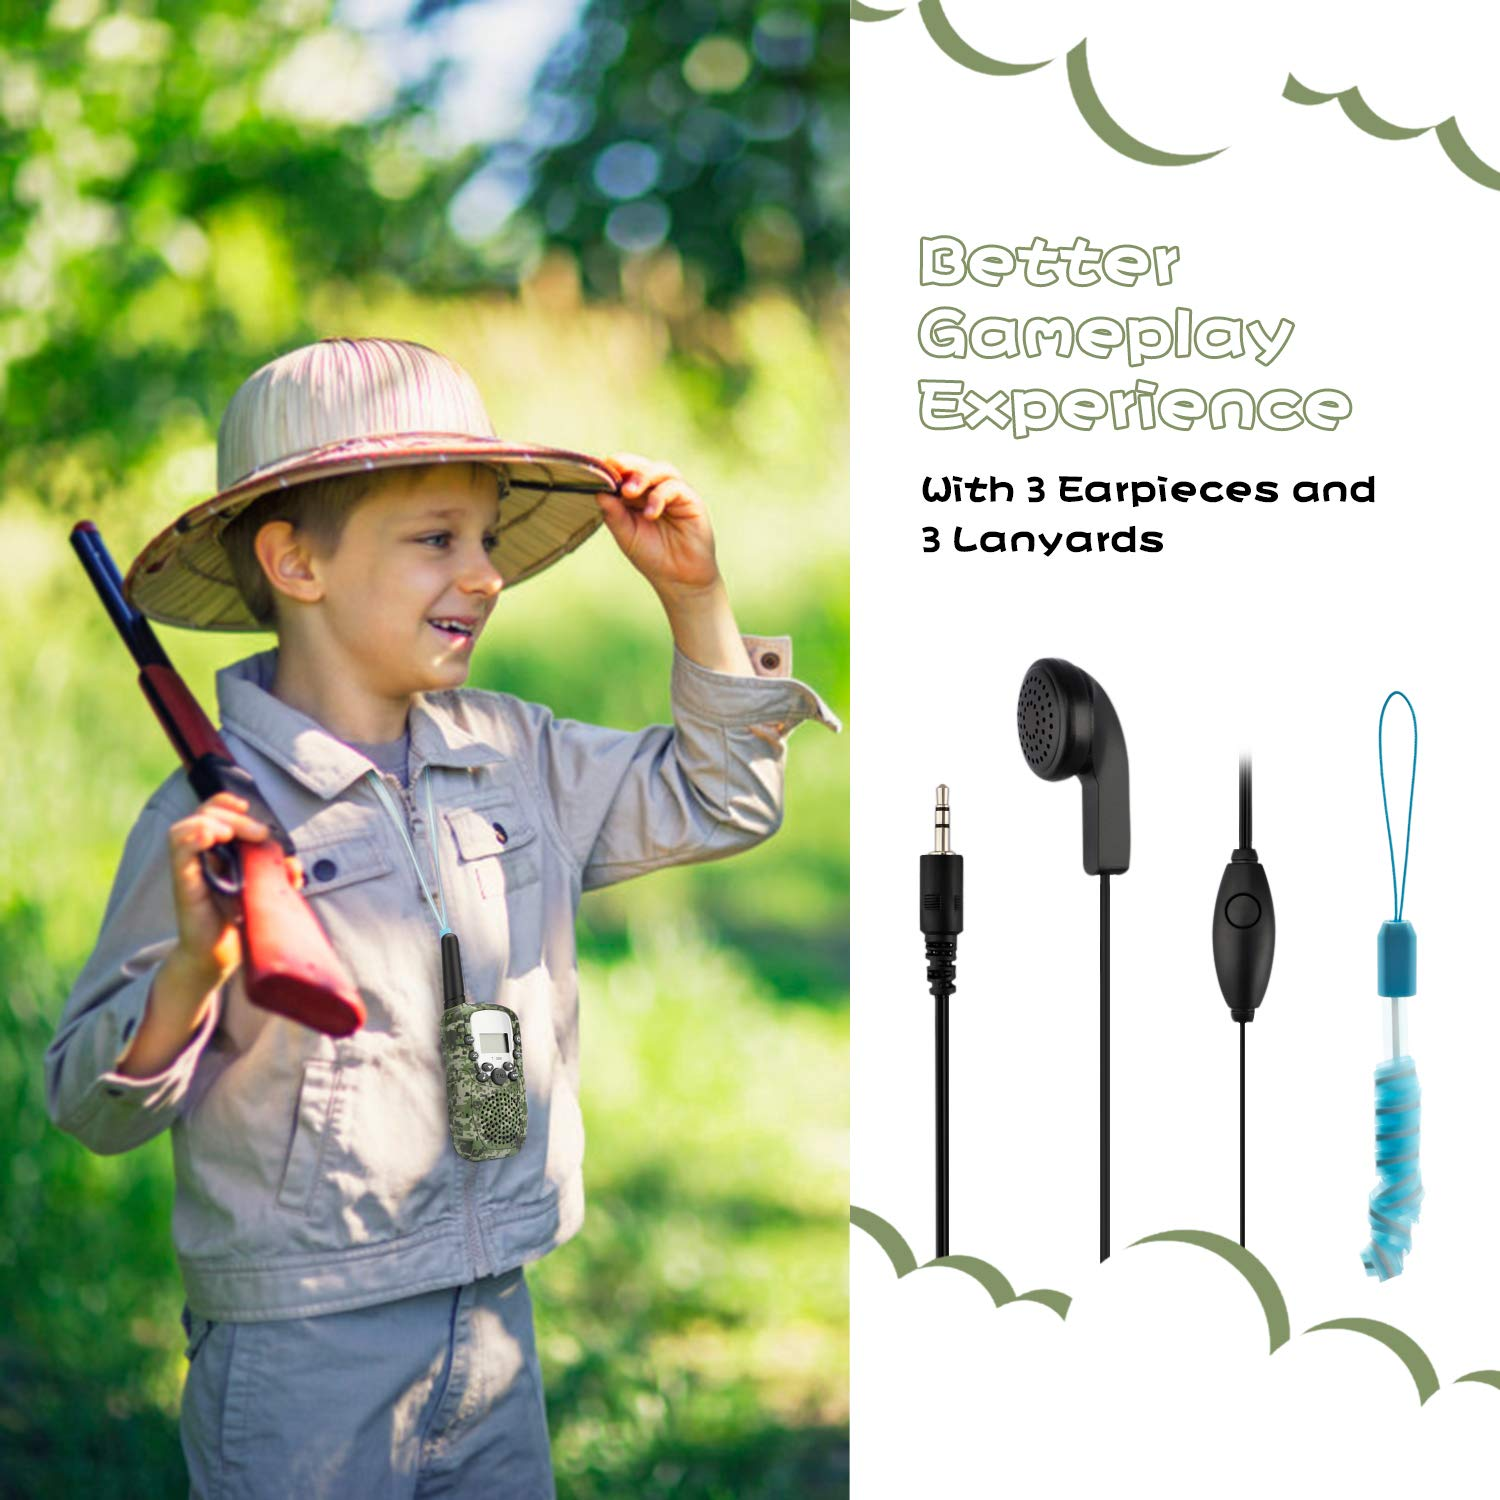 Zhenhao Walkie Talkies for Kids 3 Packs - 22 Channels Two Way Radio 3 Miles Long Range Outdoor Toys with 3 Earpieces and 3 Lanyards for Boys Girls by Zhenhao (Image #7)